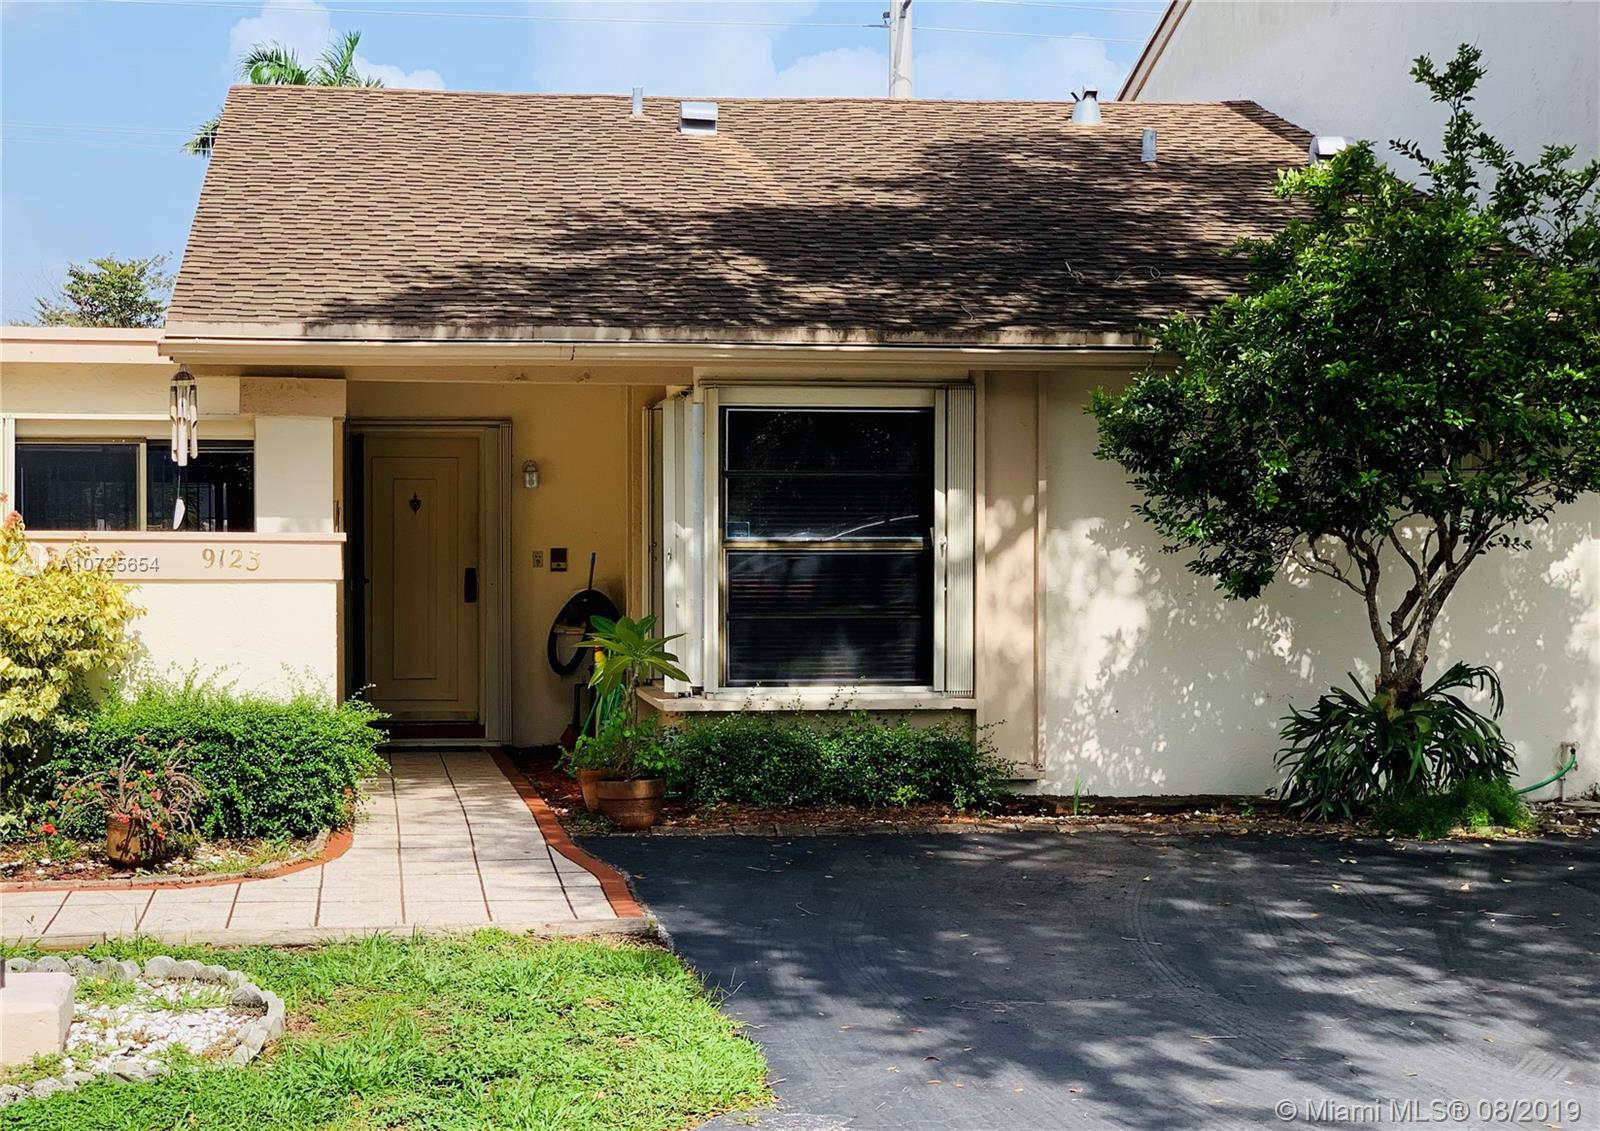 9123 SW 117th Ct, Kendall in Miami-dade County County, FL 33186 Home for Sale